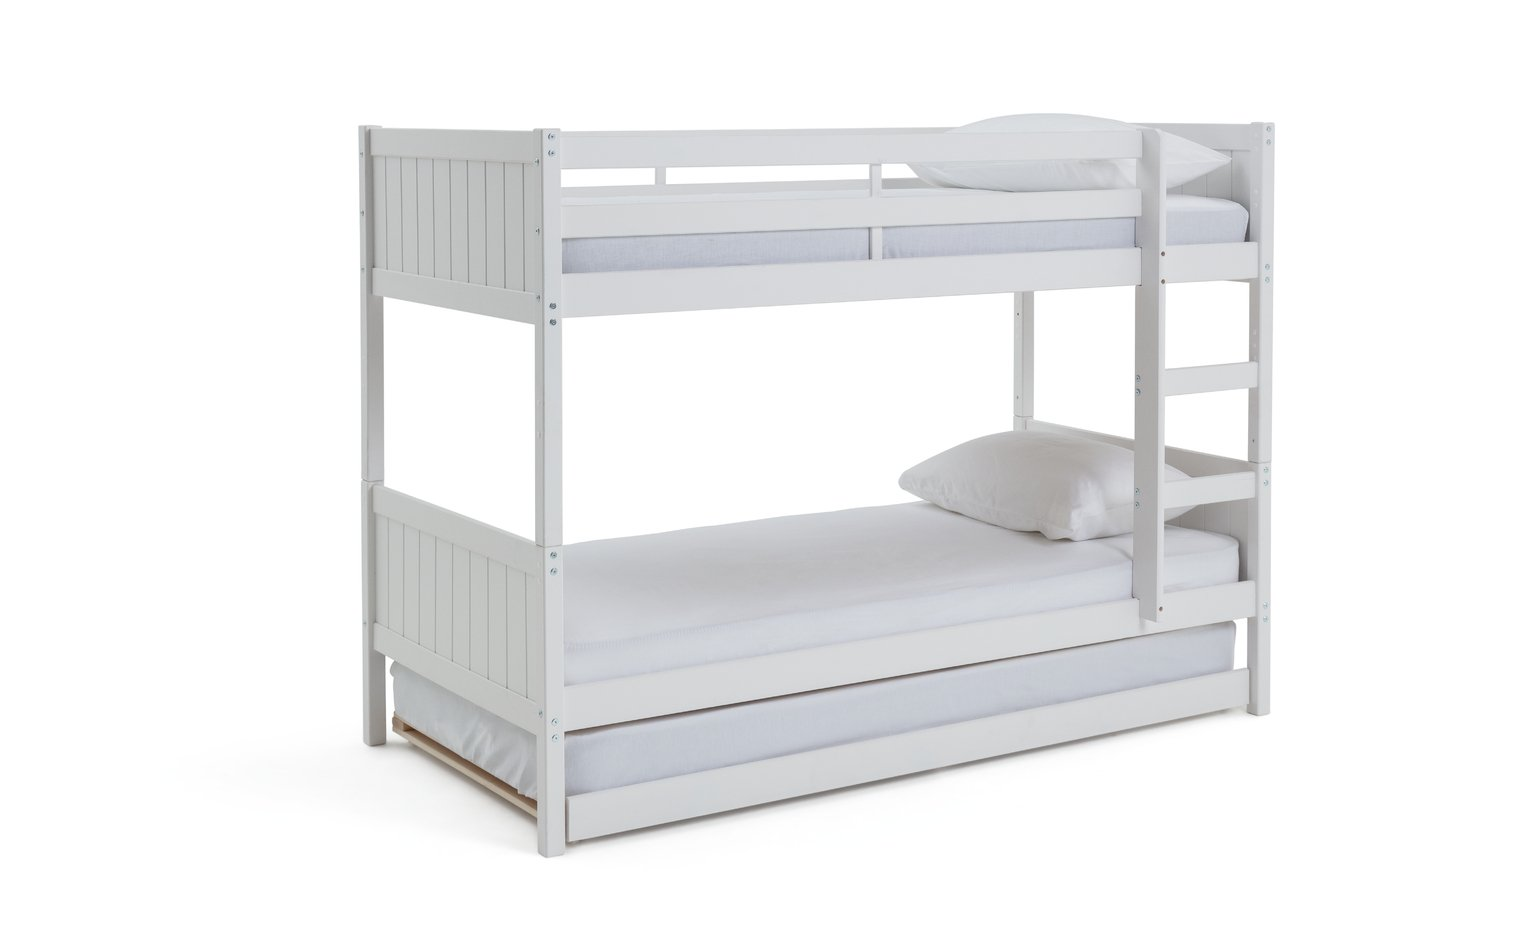 Argos Home Detachable White Bunk Bed with Trundle